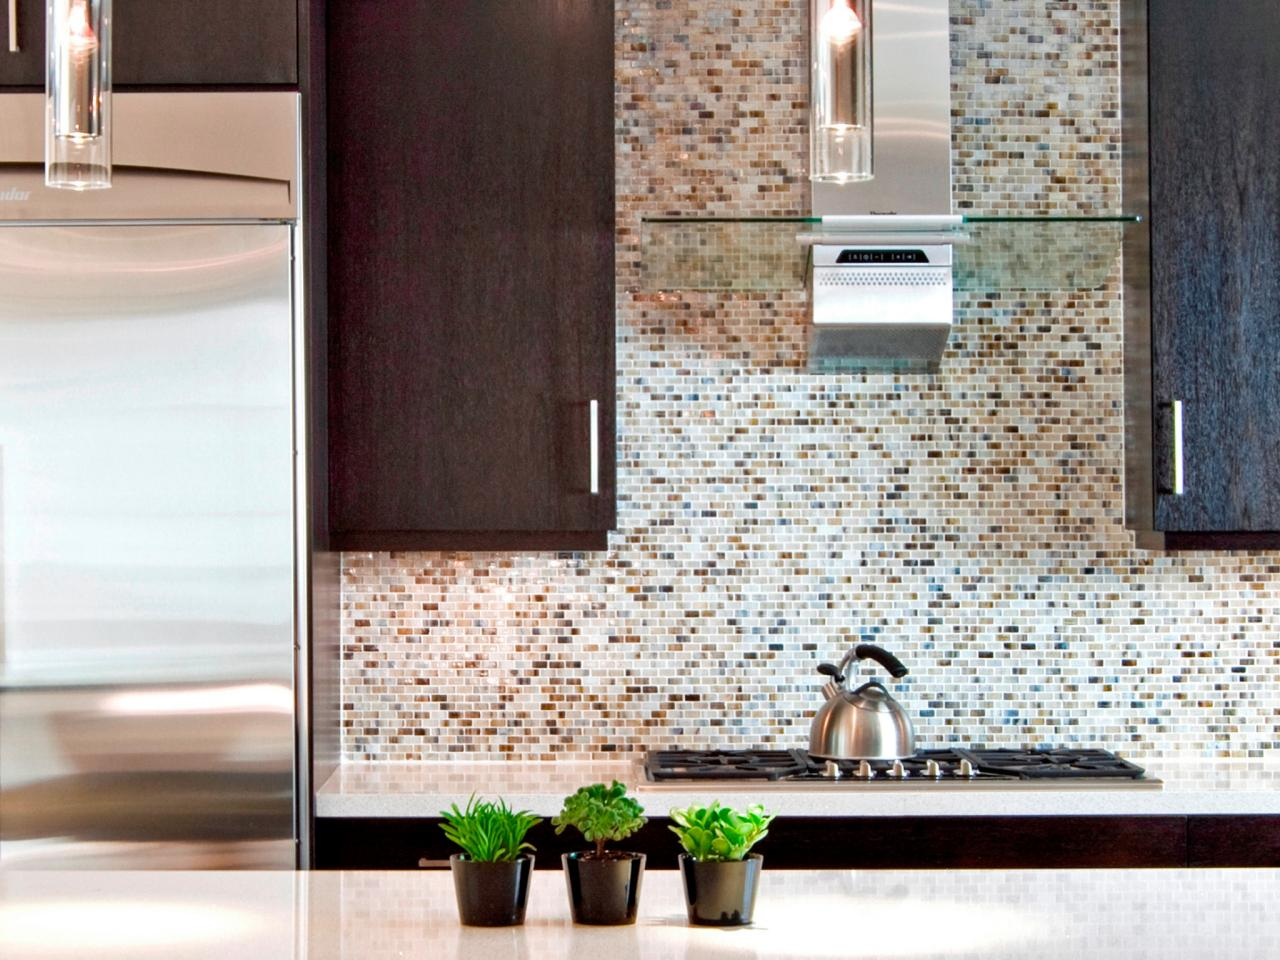 Decorate Appealing Kitchen With Small Tile Kitchen Backsplash Designs And  Modern Range Hood